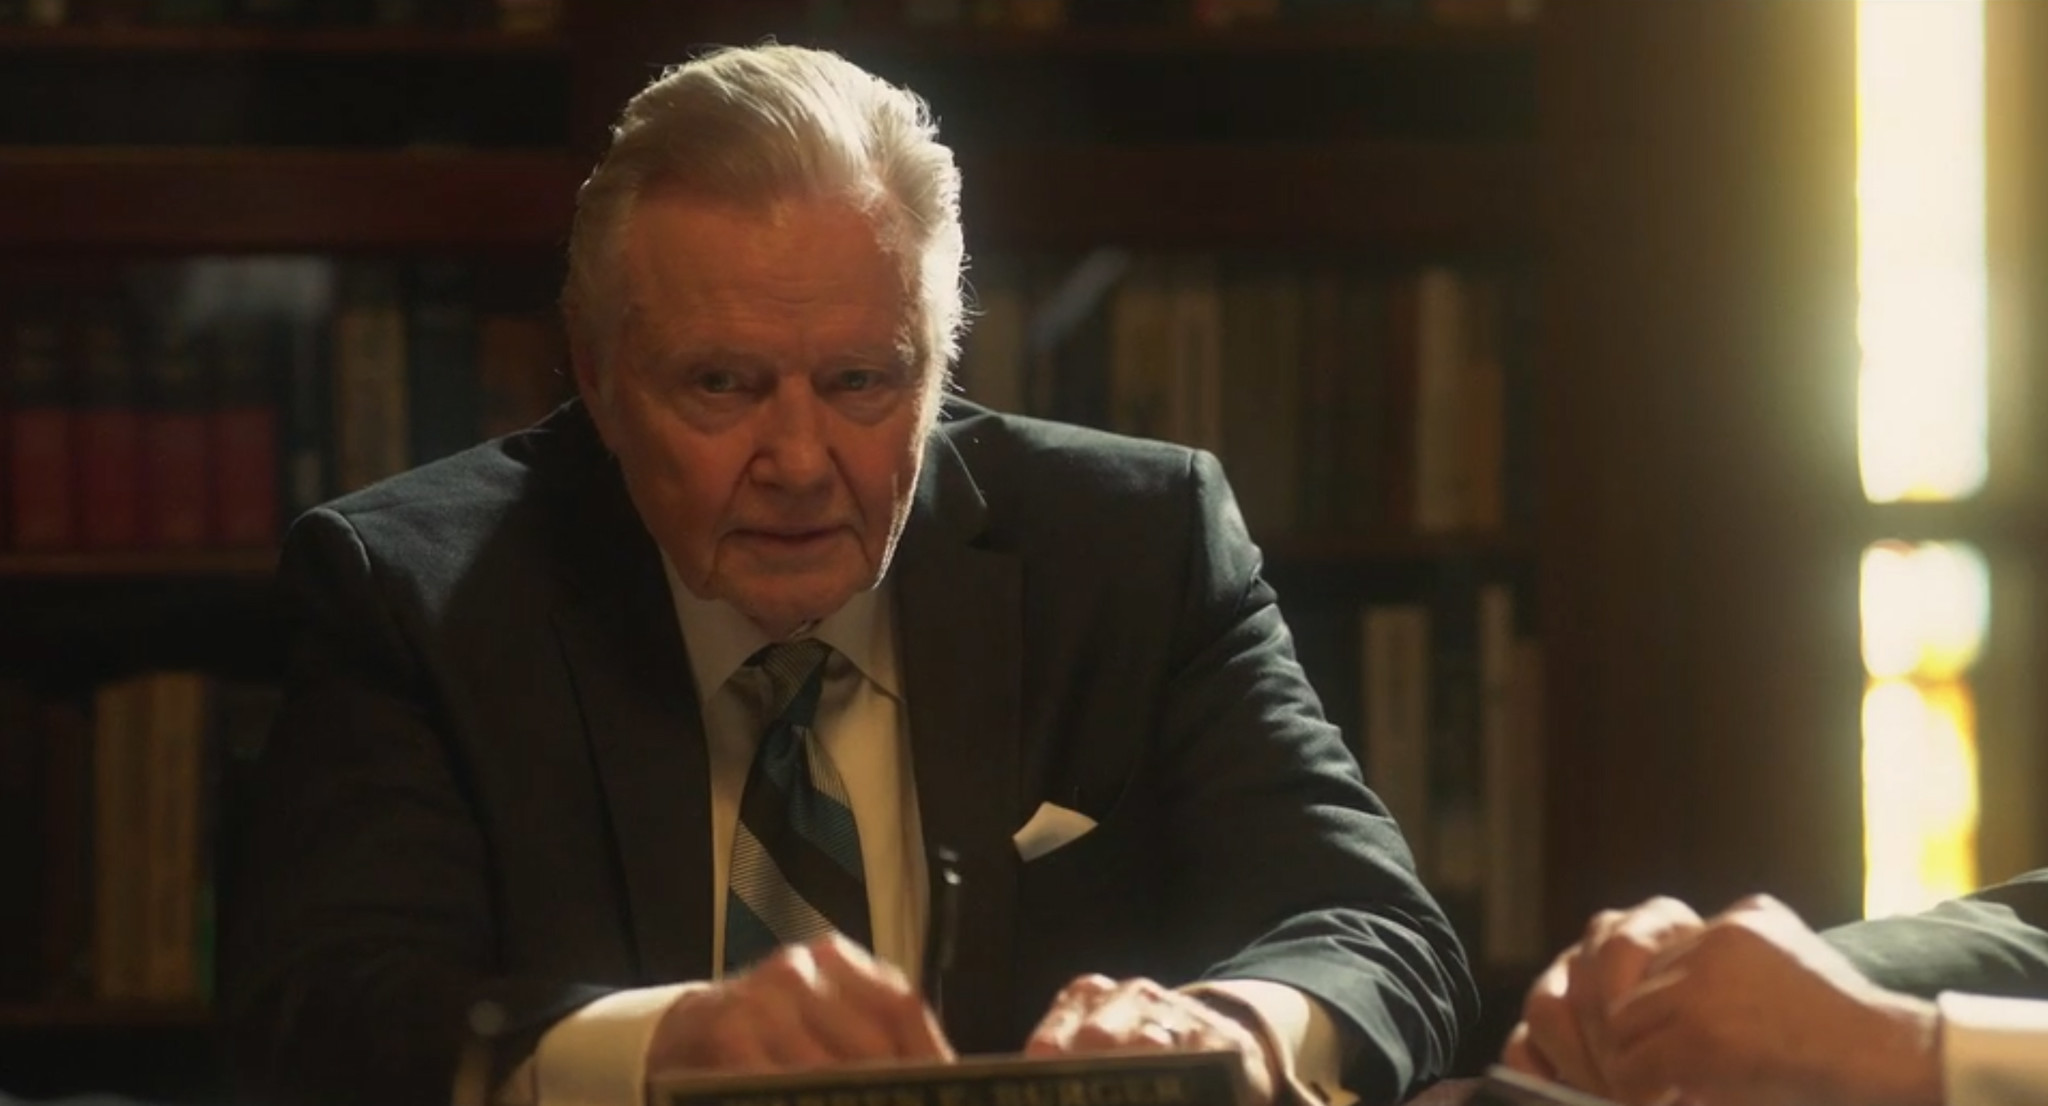 SEE IT: First trailer for controversial 'Roe v. Wade' features Jon Voight and an explosion